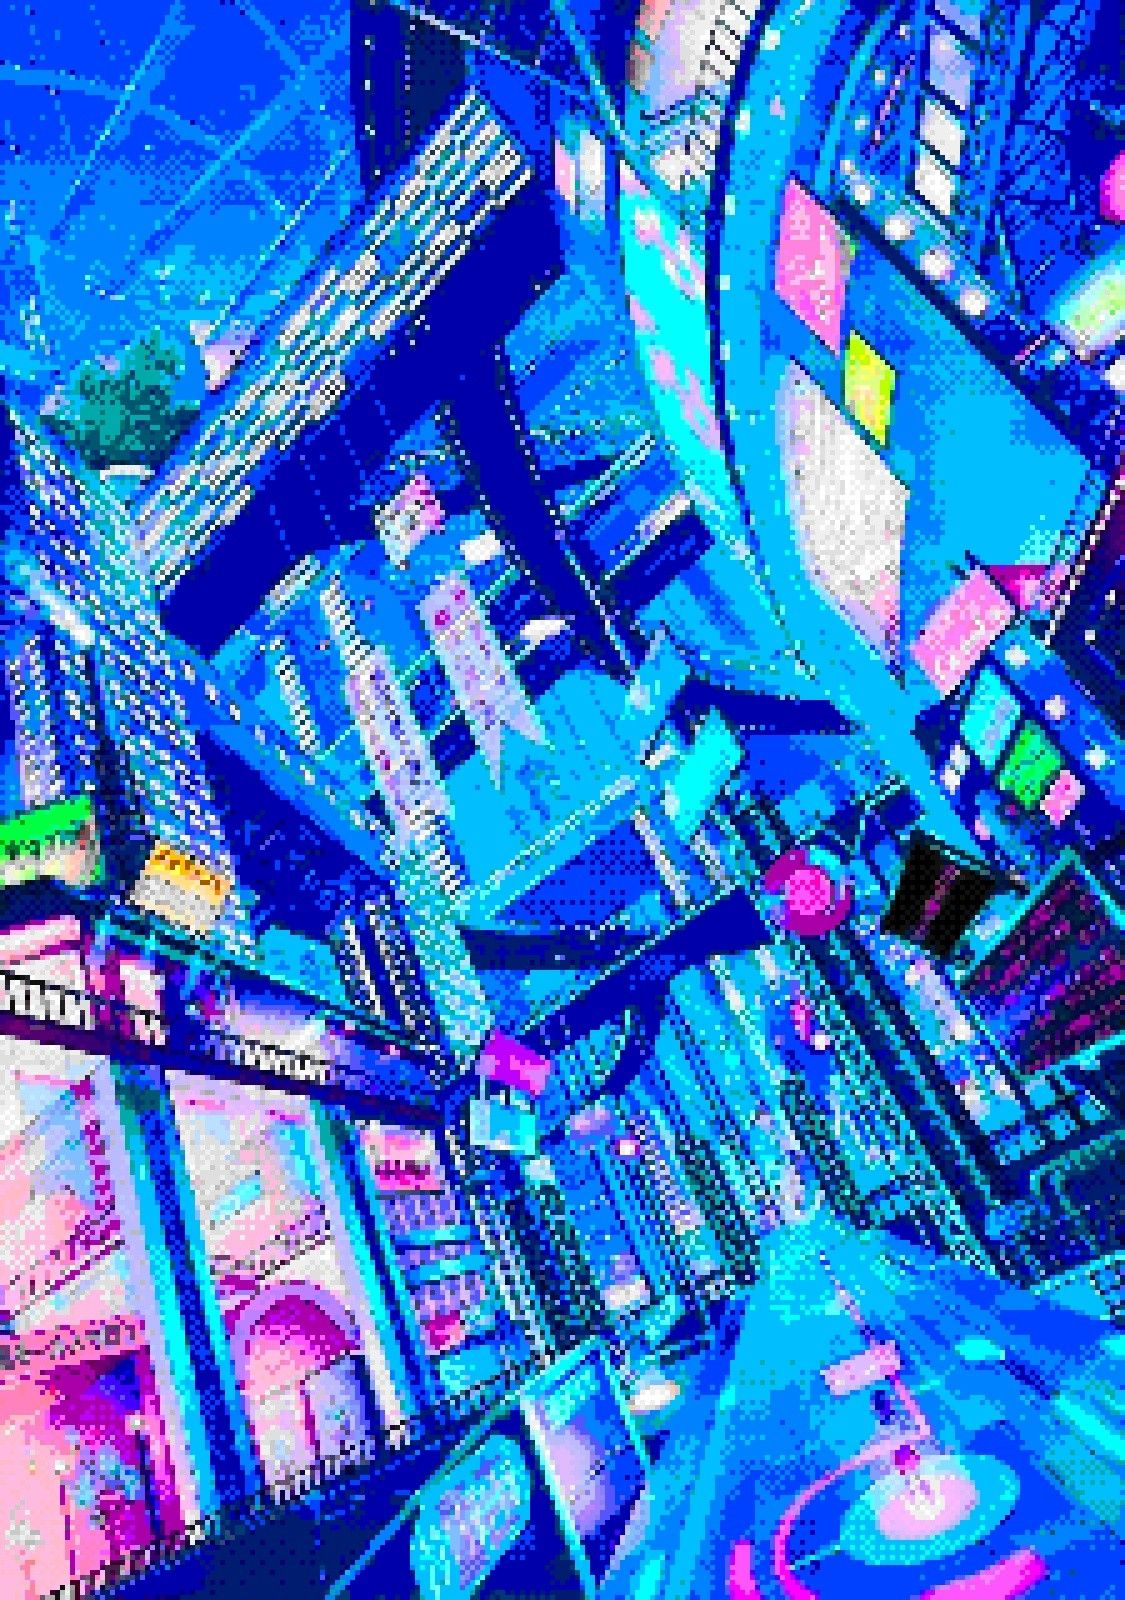 Pin by ??? ??? on Pixel Art (With images) Cyberpunk